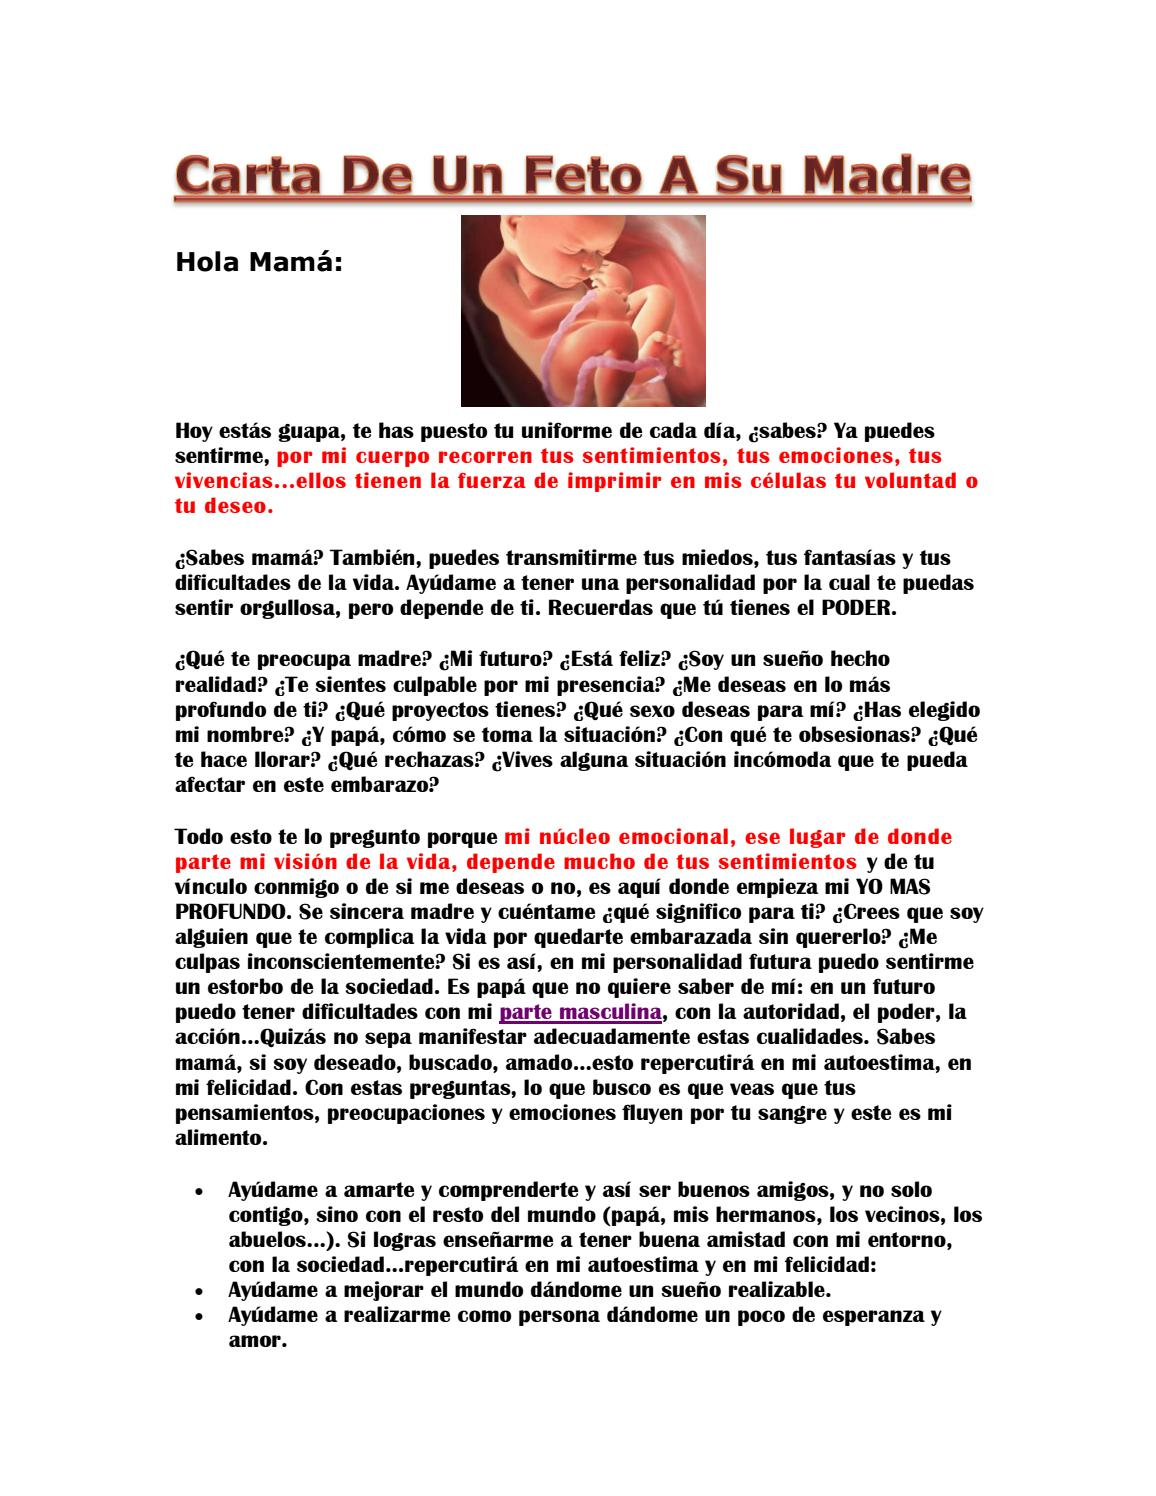 Carta De Un Feto A Su Madre By Gmail9926 Issuu